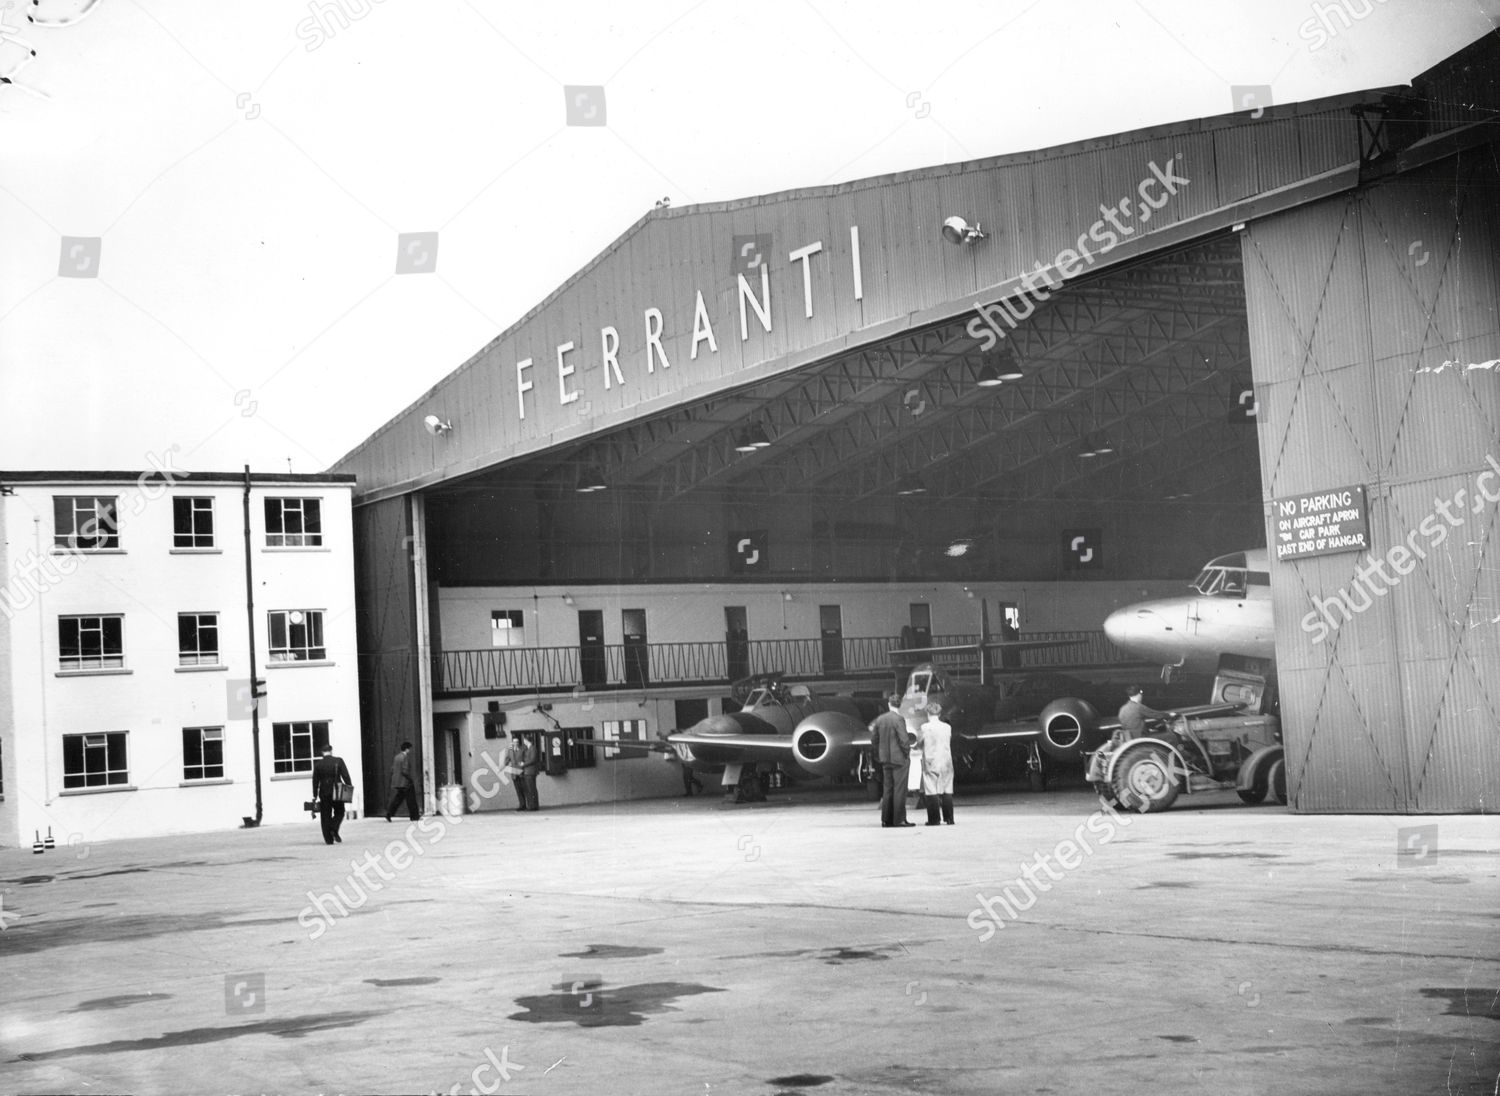 Stock photo of The Ferranti Building And Hanger At Turnhouse Airport In Edinburgh Scotland.